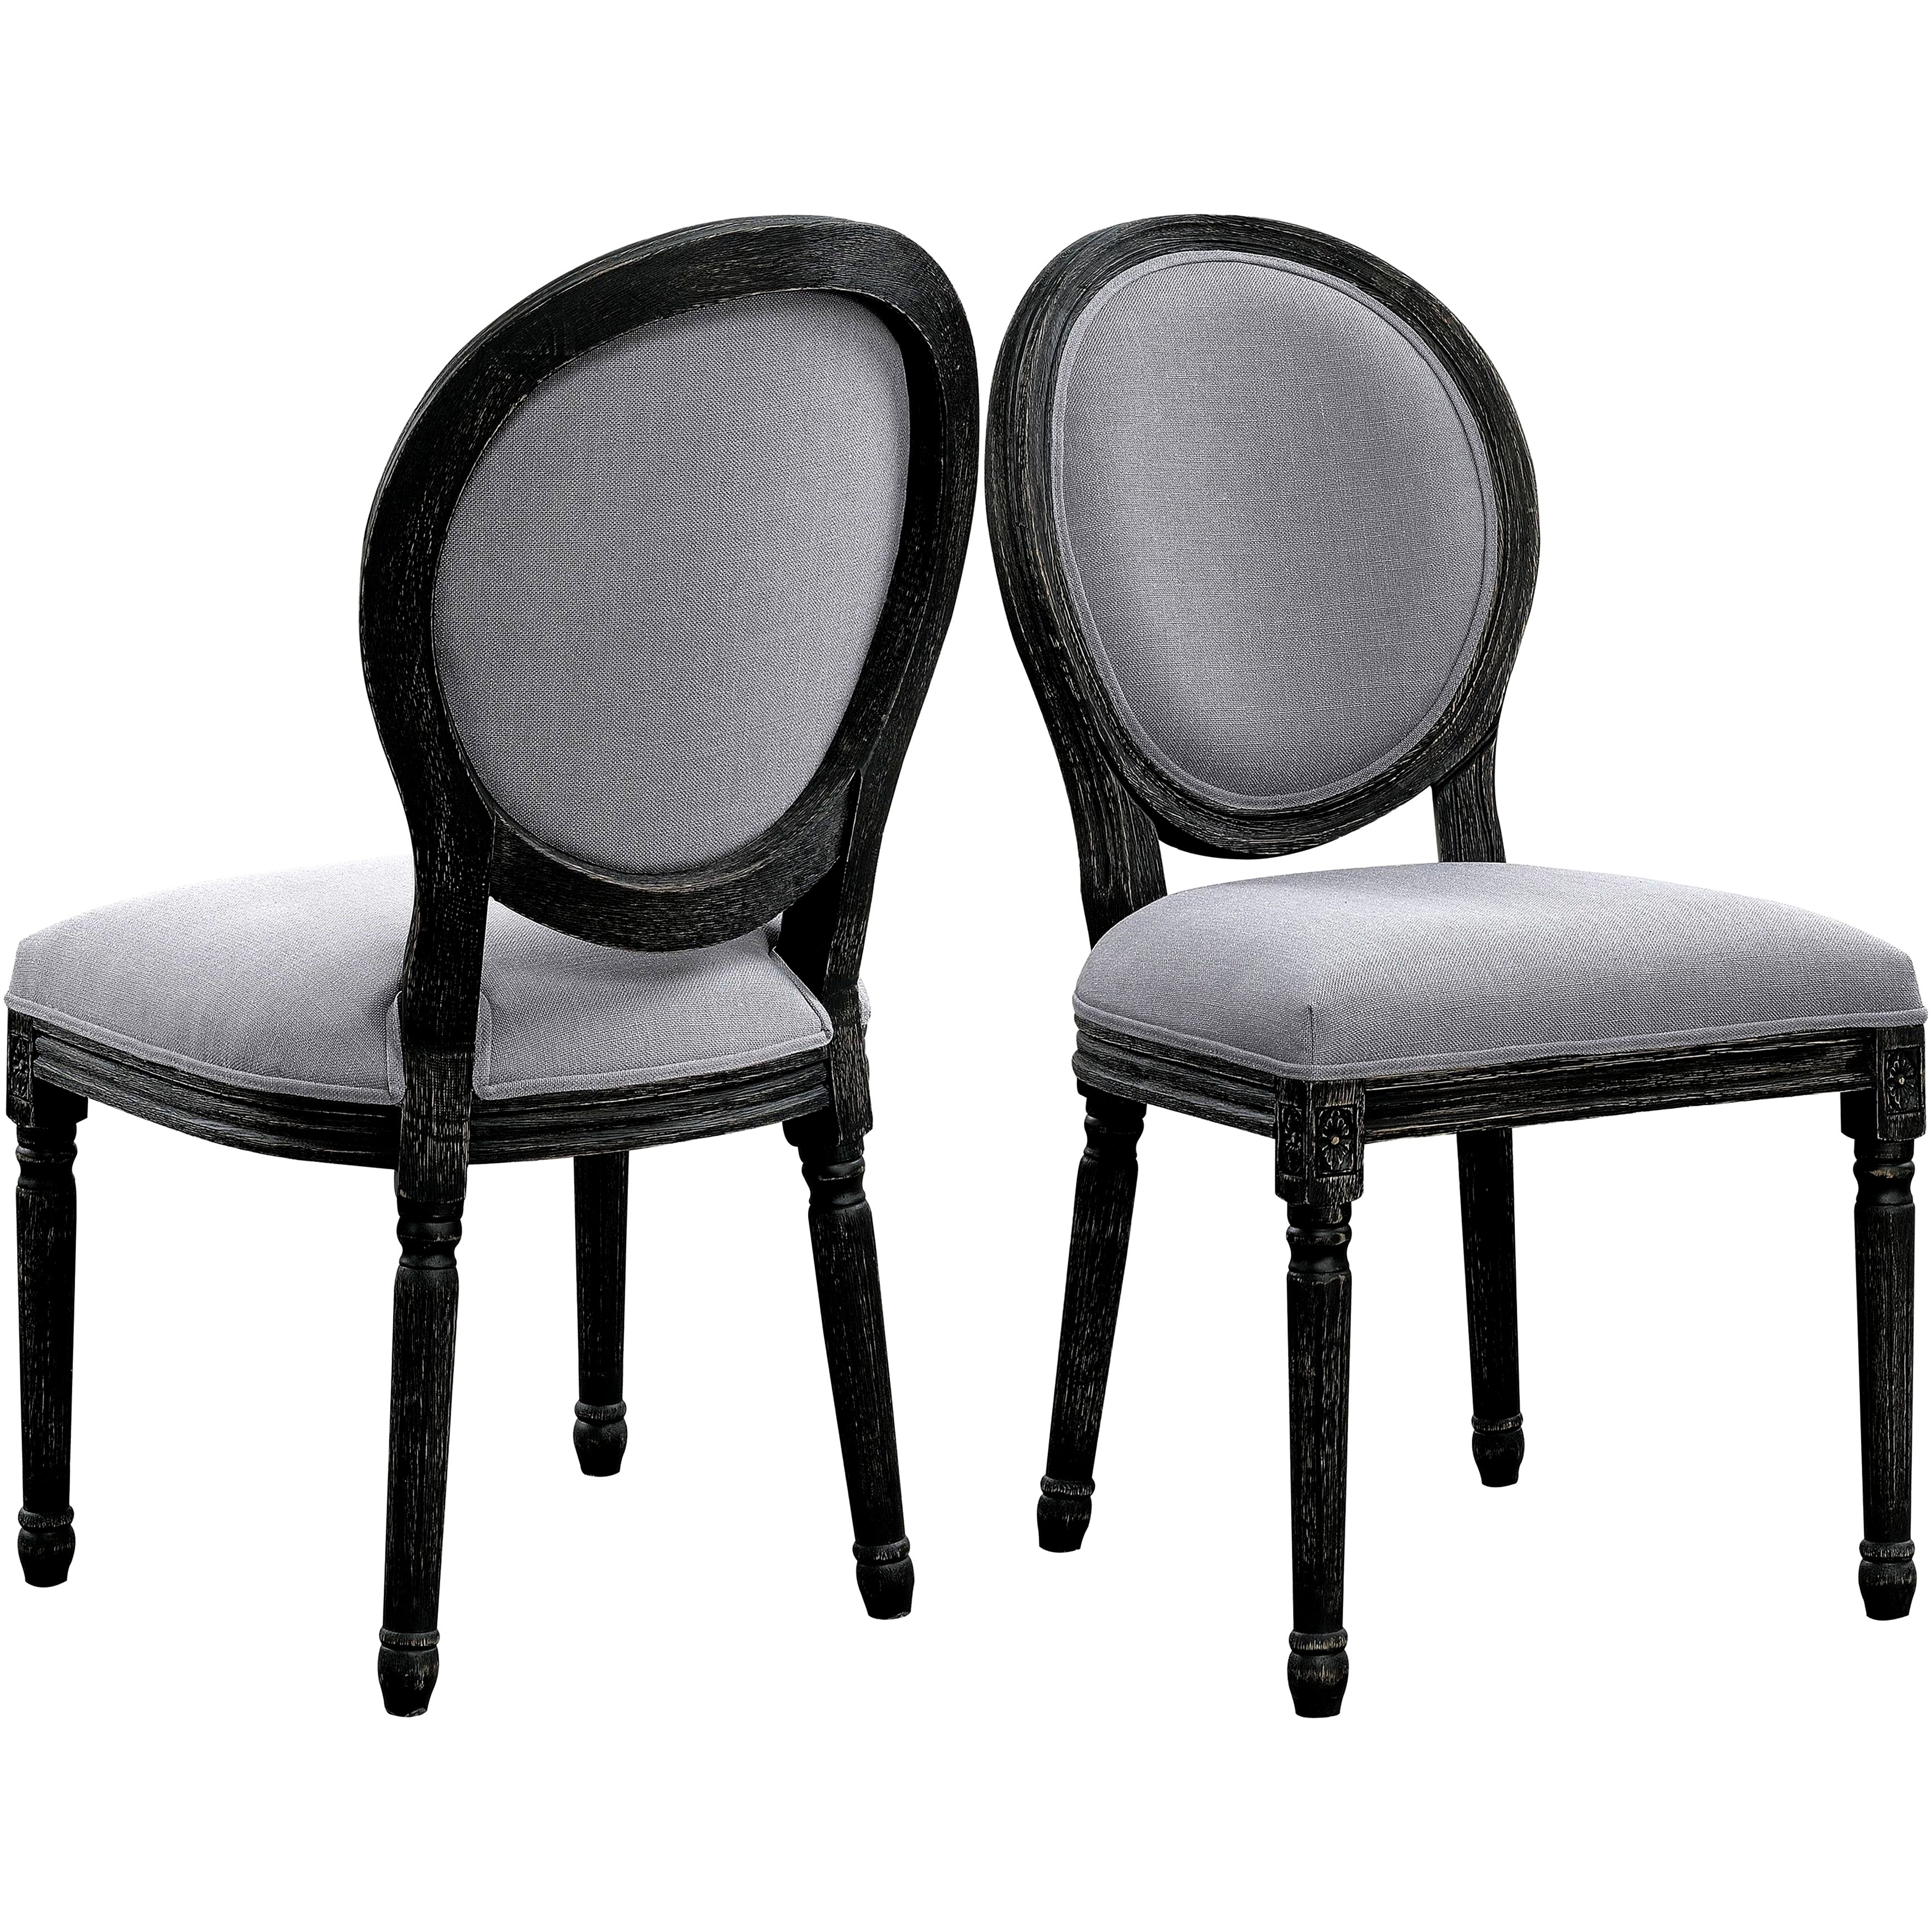 Vintage french design oval back dining chairs set of 2